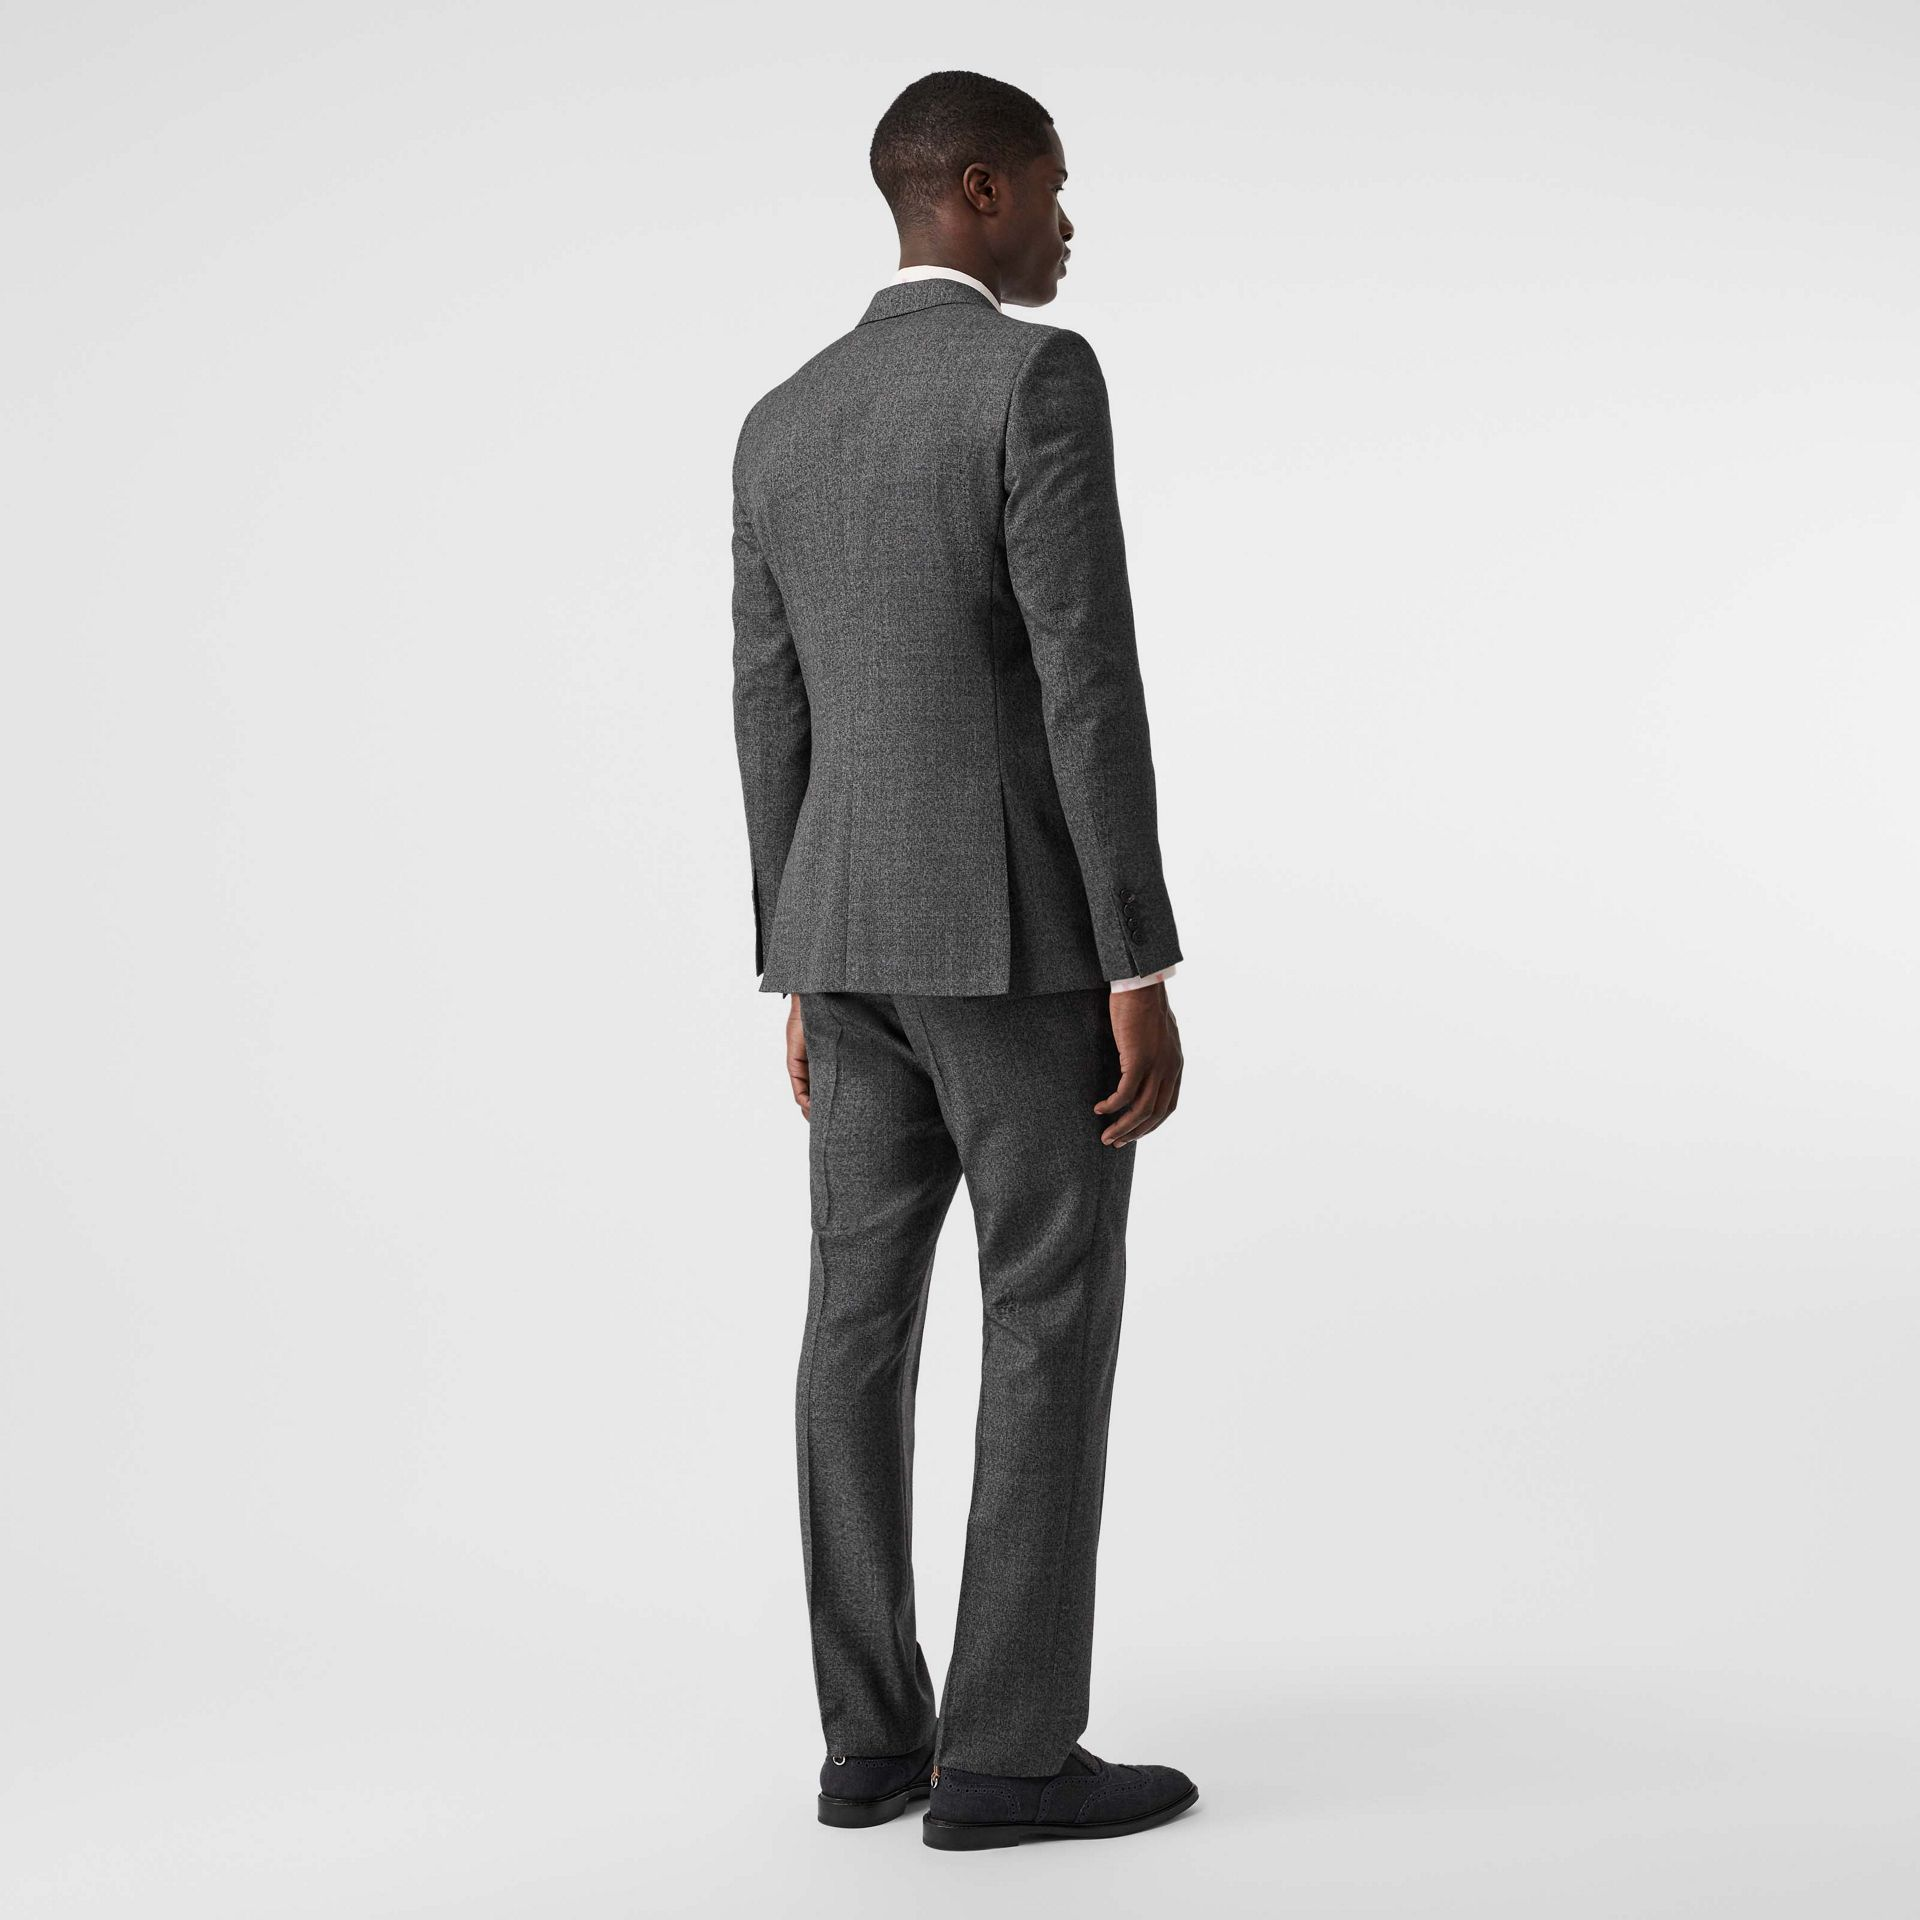 English Fit Sharkskin Wool Suit in Black Melange - Men | Burberry United Kingdom - gallery image 2